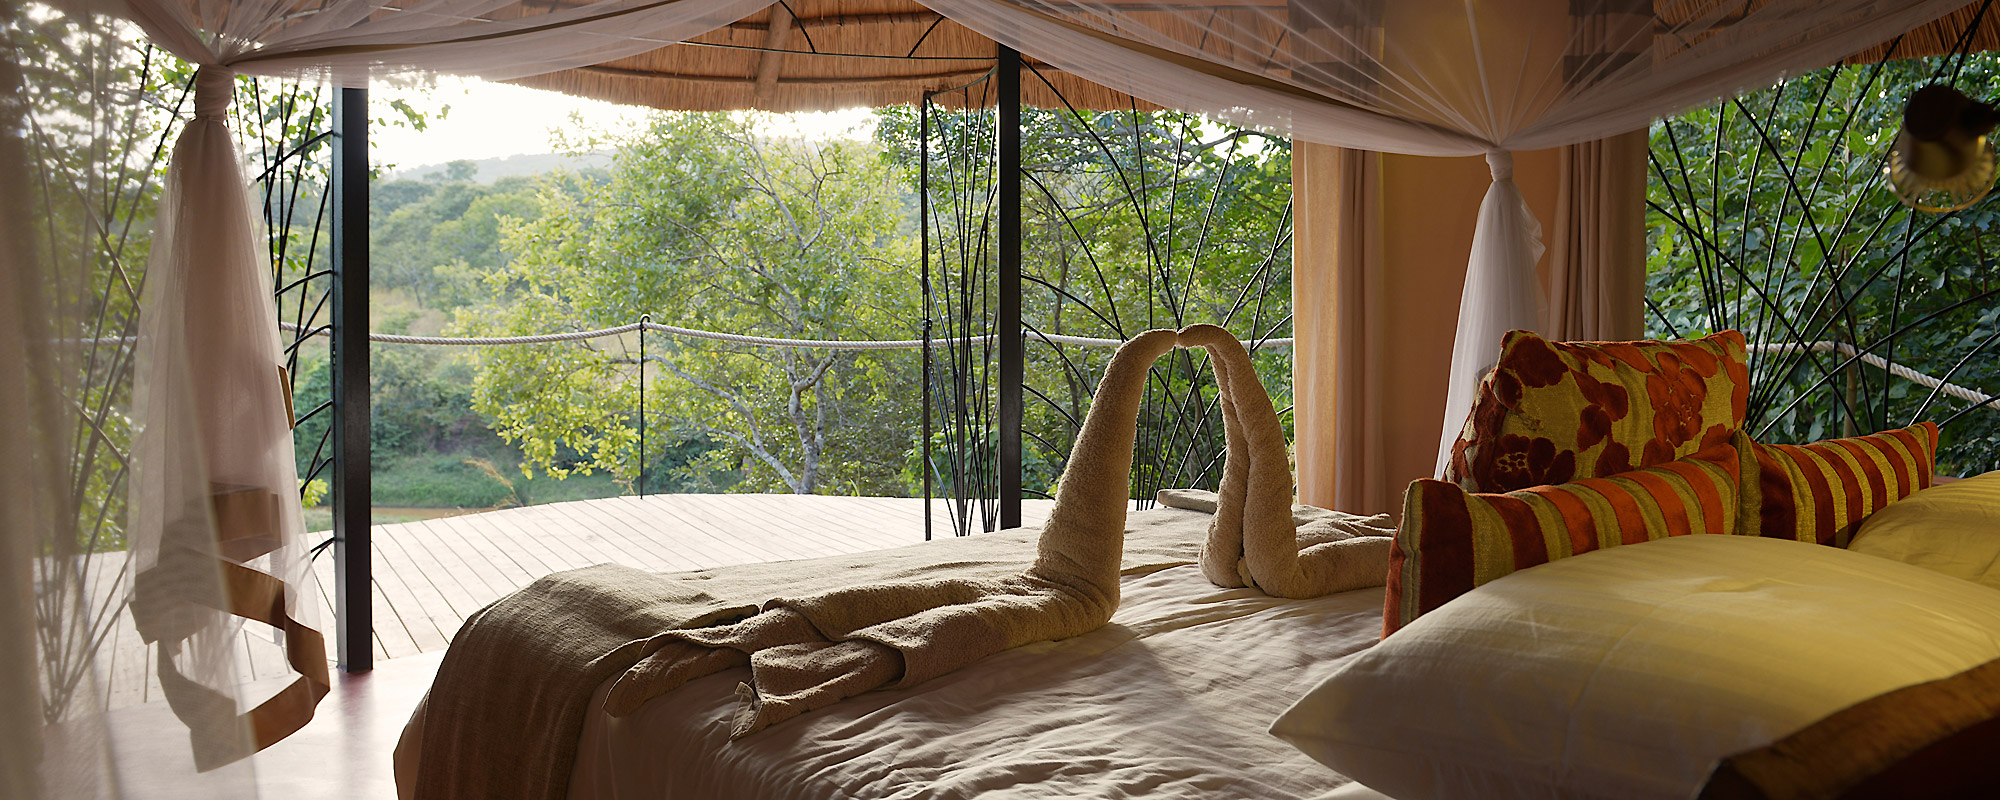 Accommodation Rooms - Tongole Wilderness Lodge